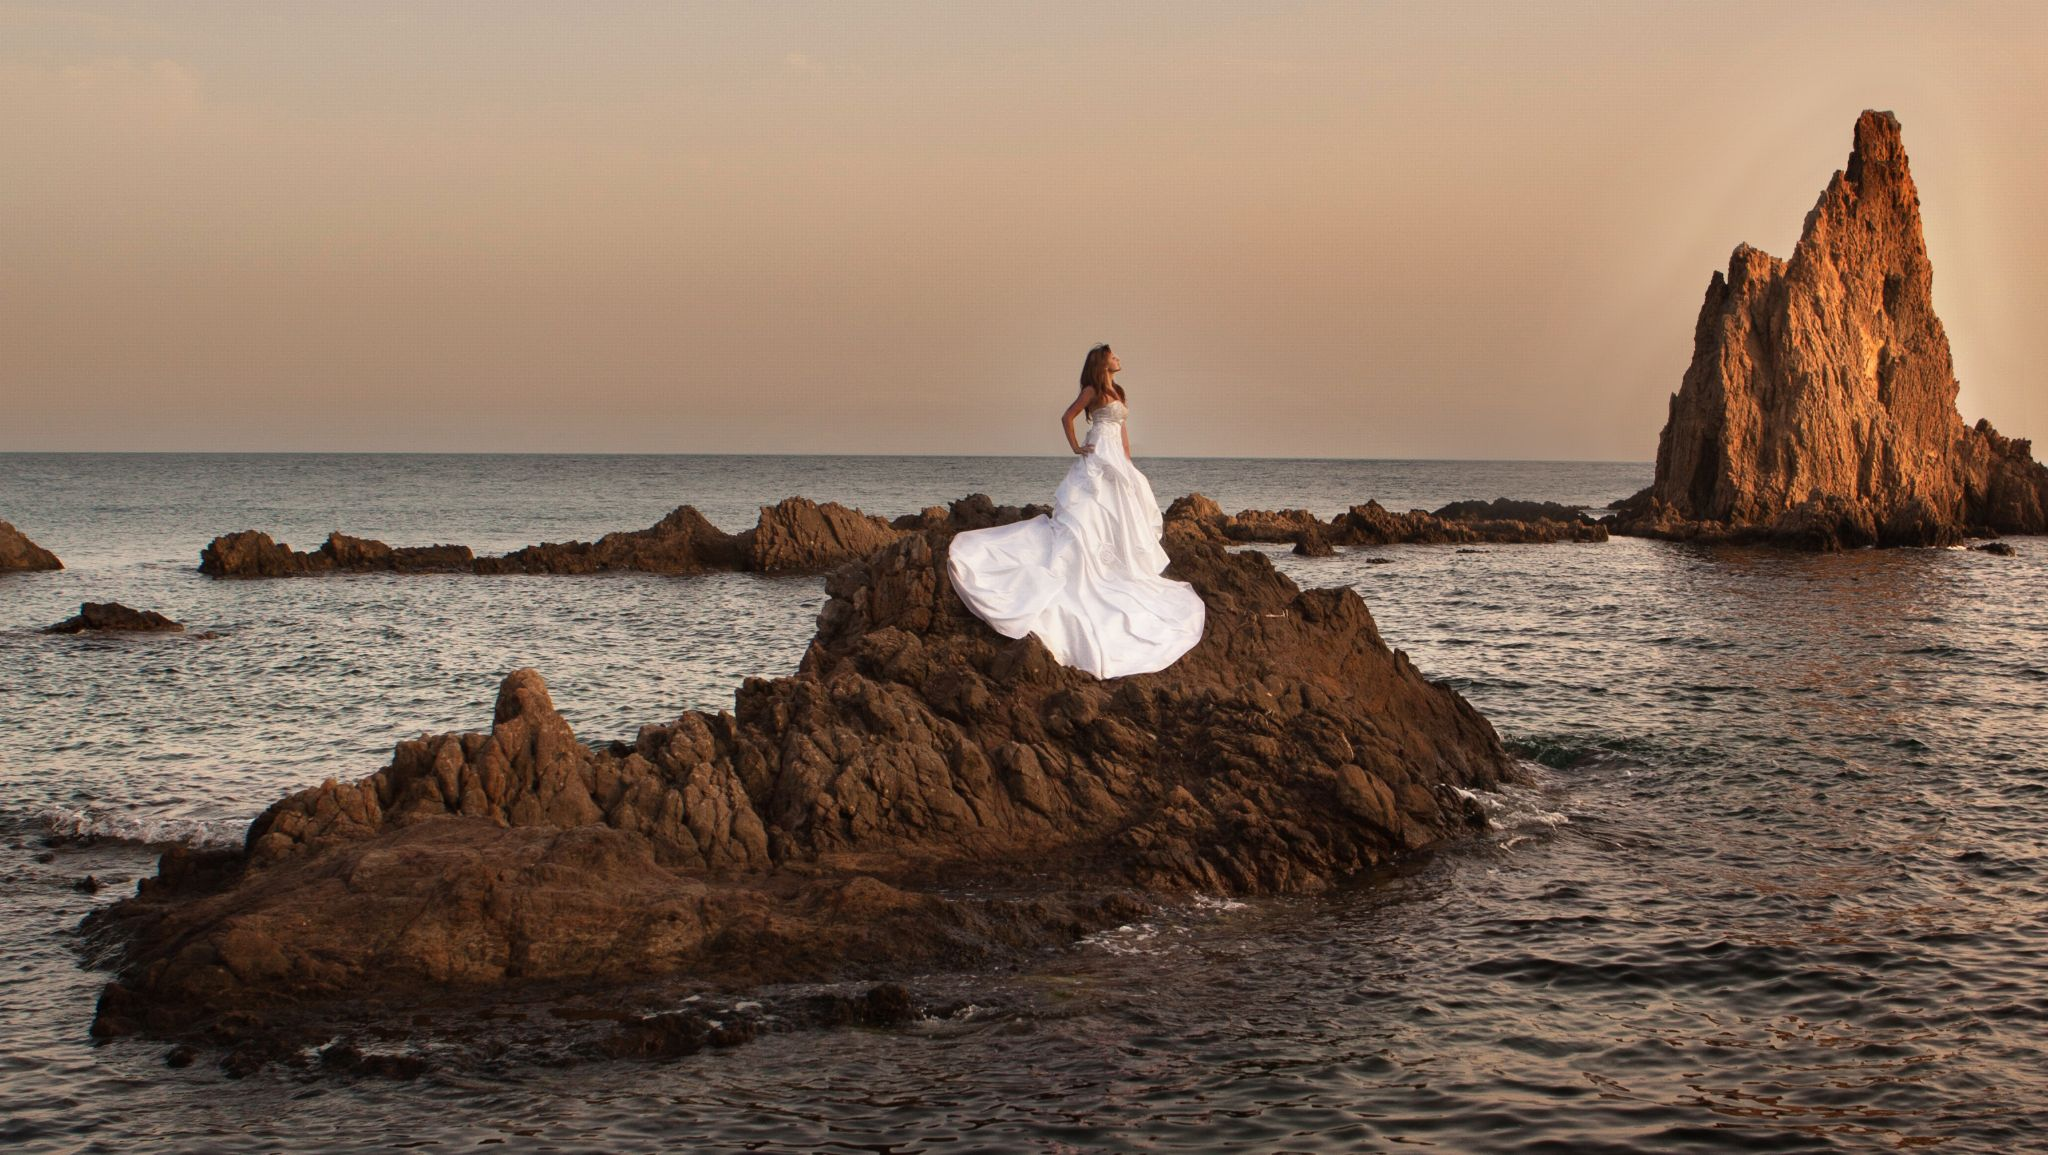 Bride in an island by ivanvazquezphotographer